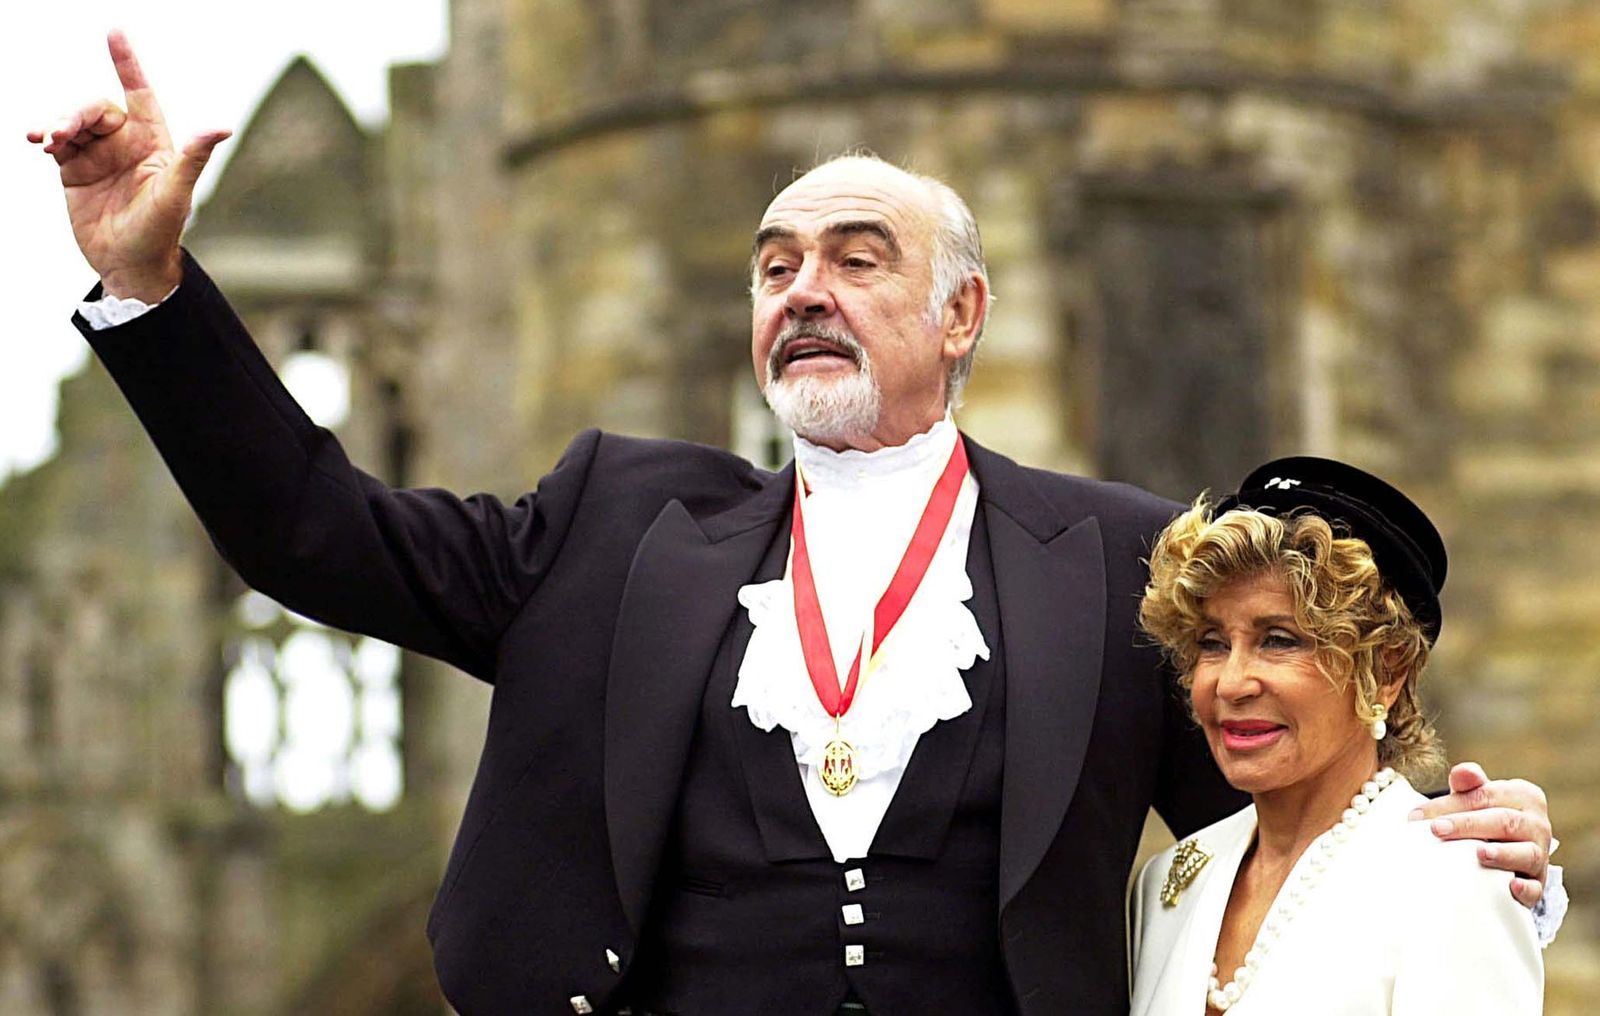 SIR SEAN CONNERY AND HIS WIFE POSE FOR PHOTOGRAPHS IN EDINBURGH.